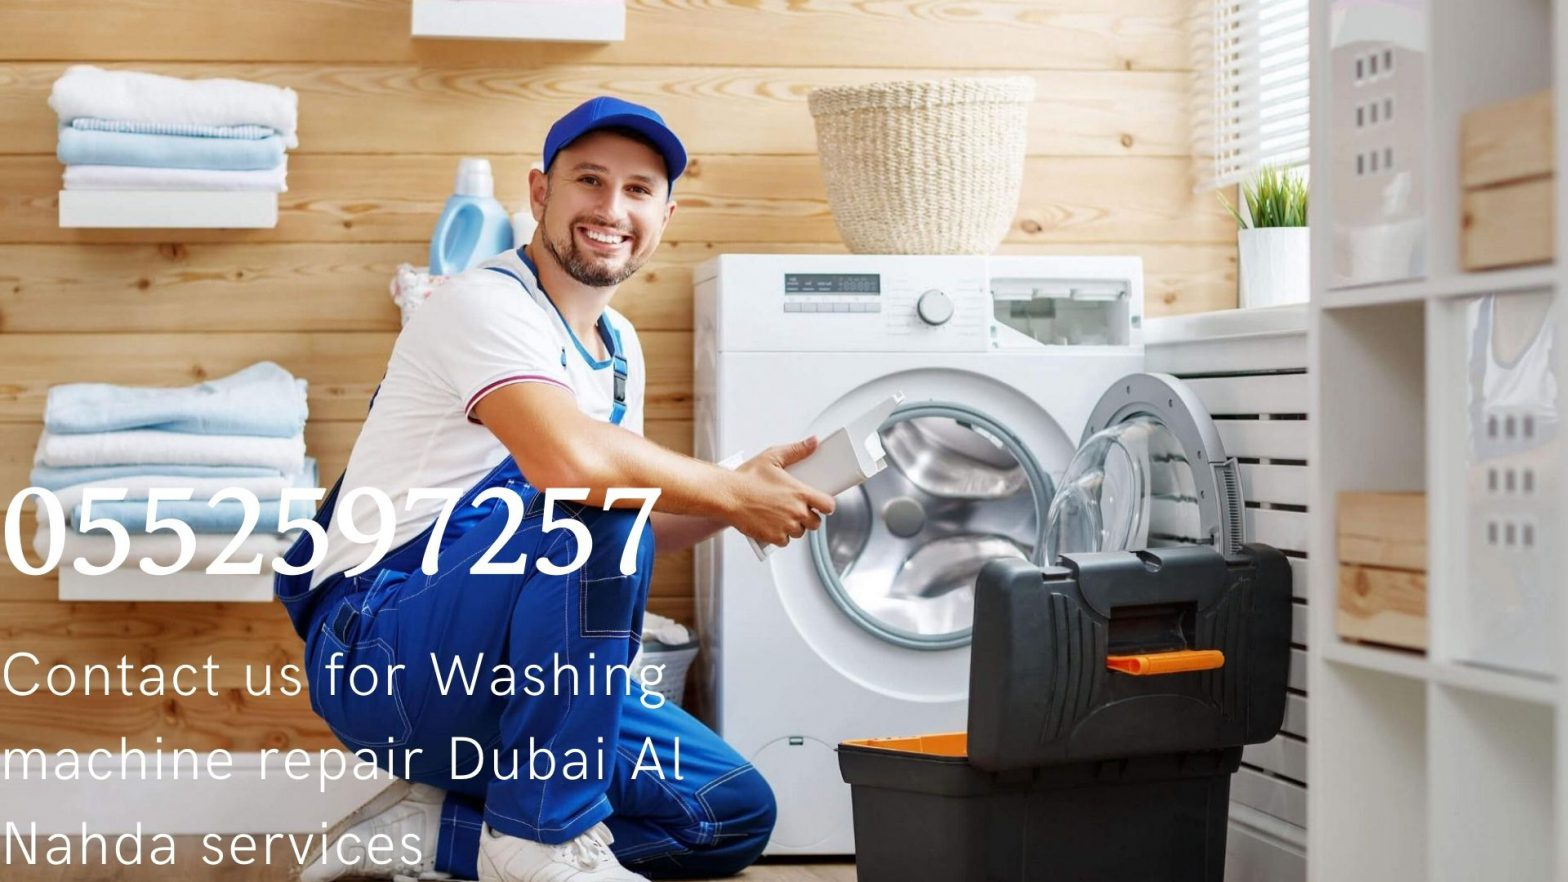 Washing machine repair Dubai Al Nahda